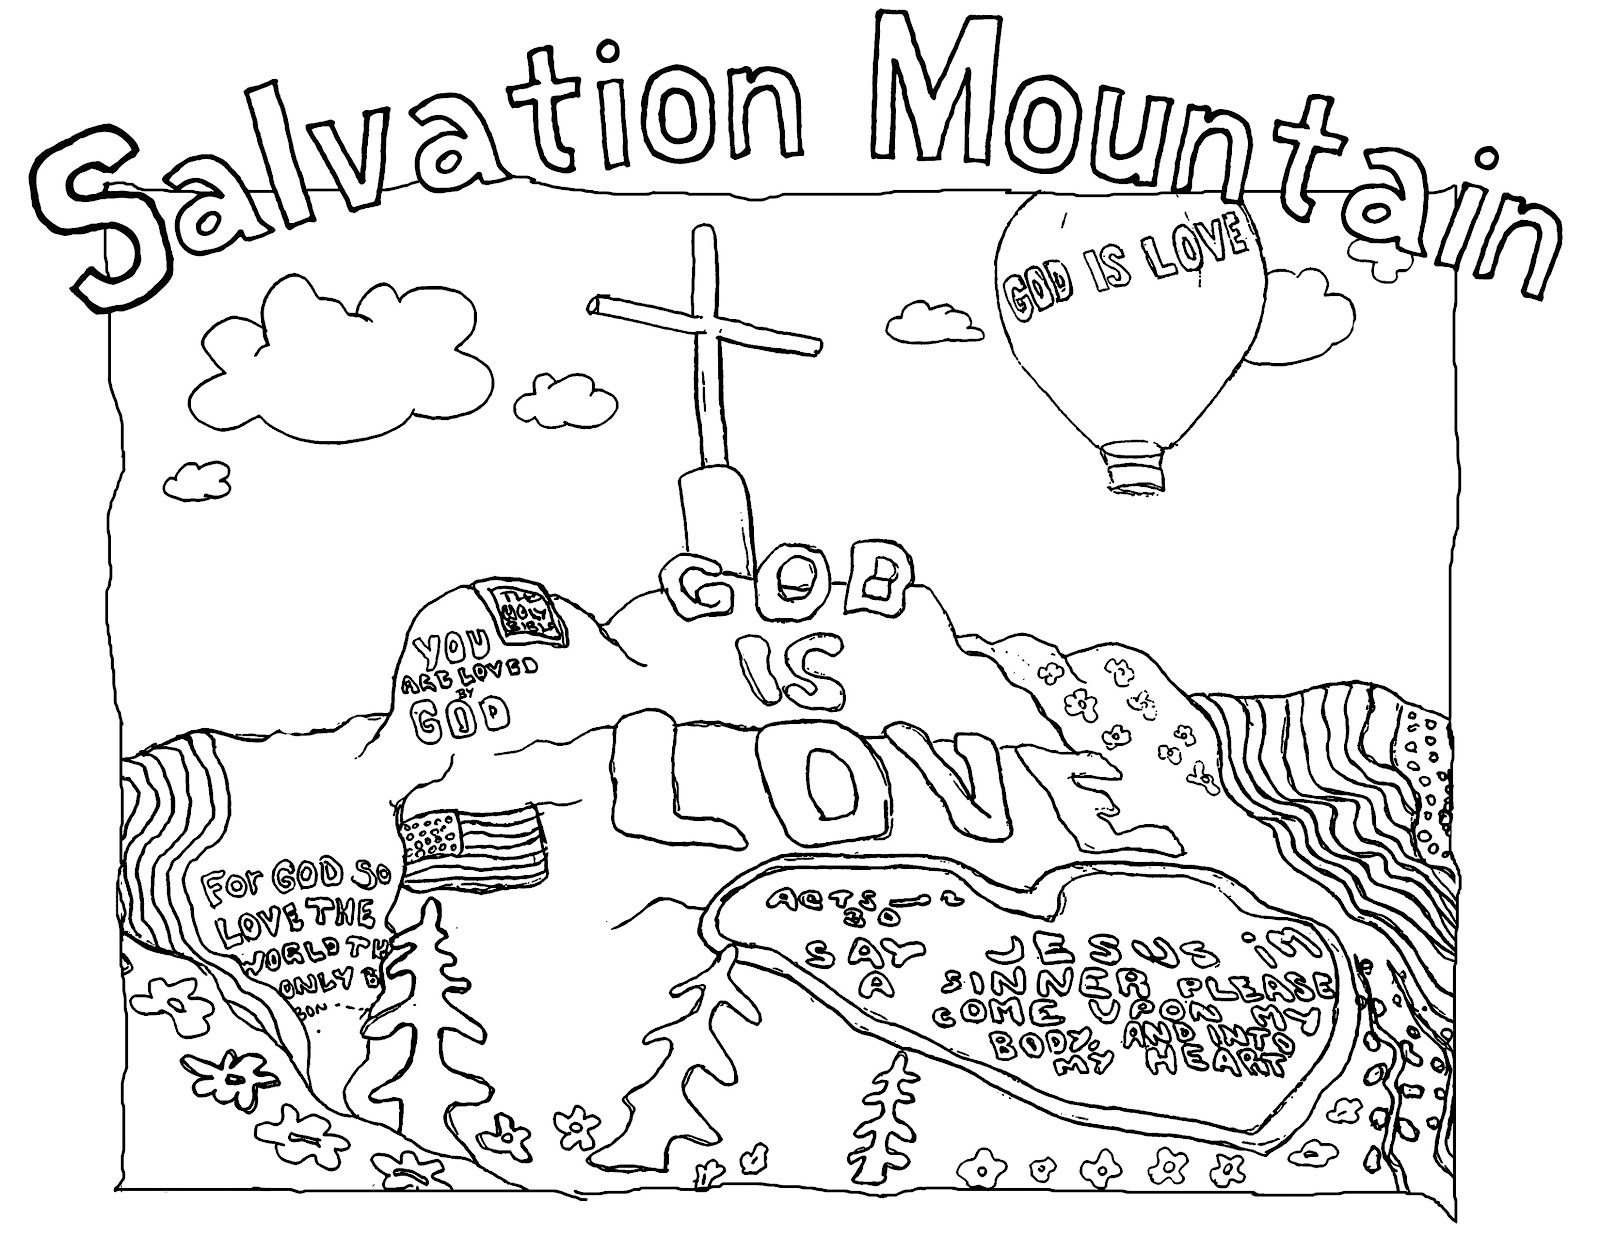 Paint and Pixels: A Salvation Mountain Coloring Page!